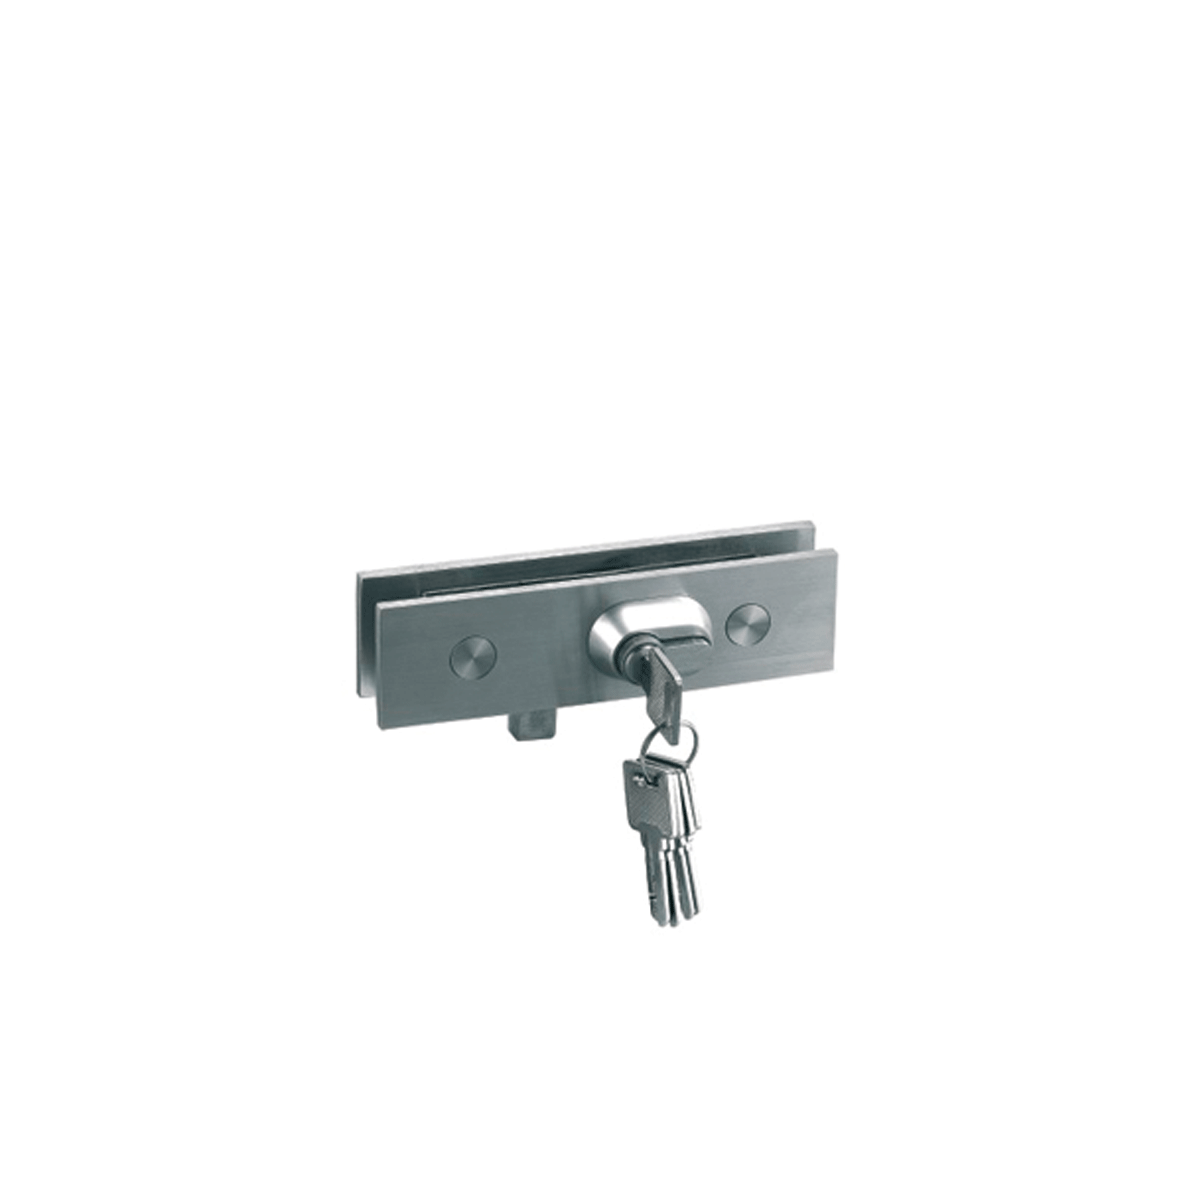 Picture of SA 7117 Kubus cylinder lock